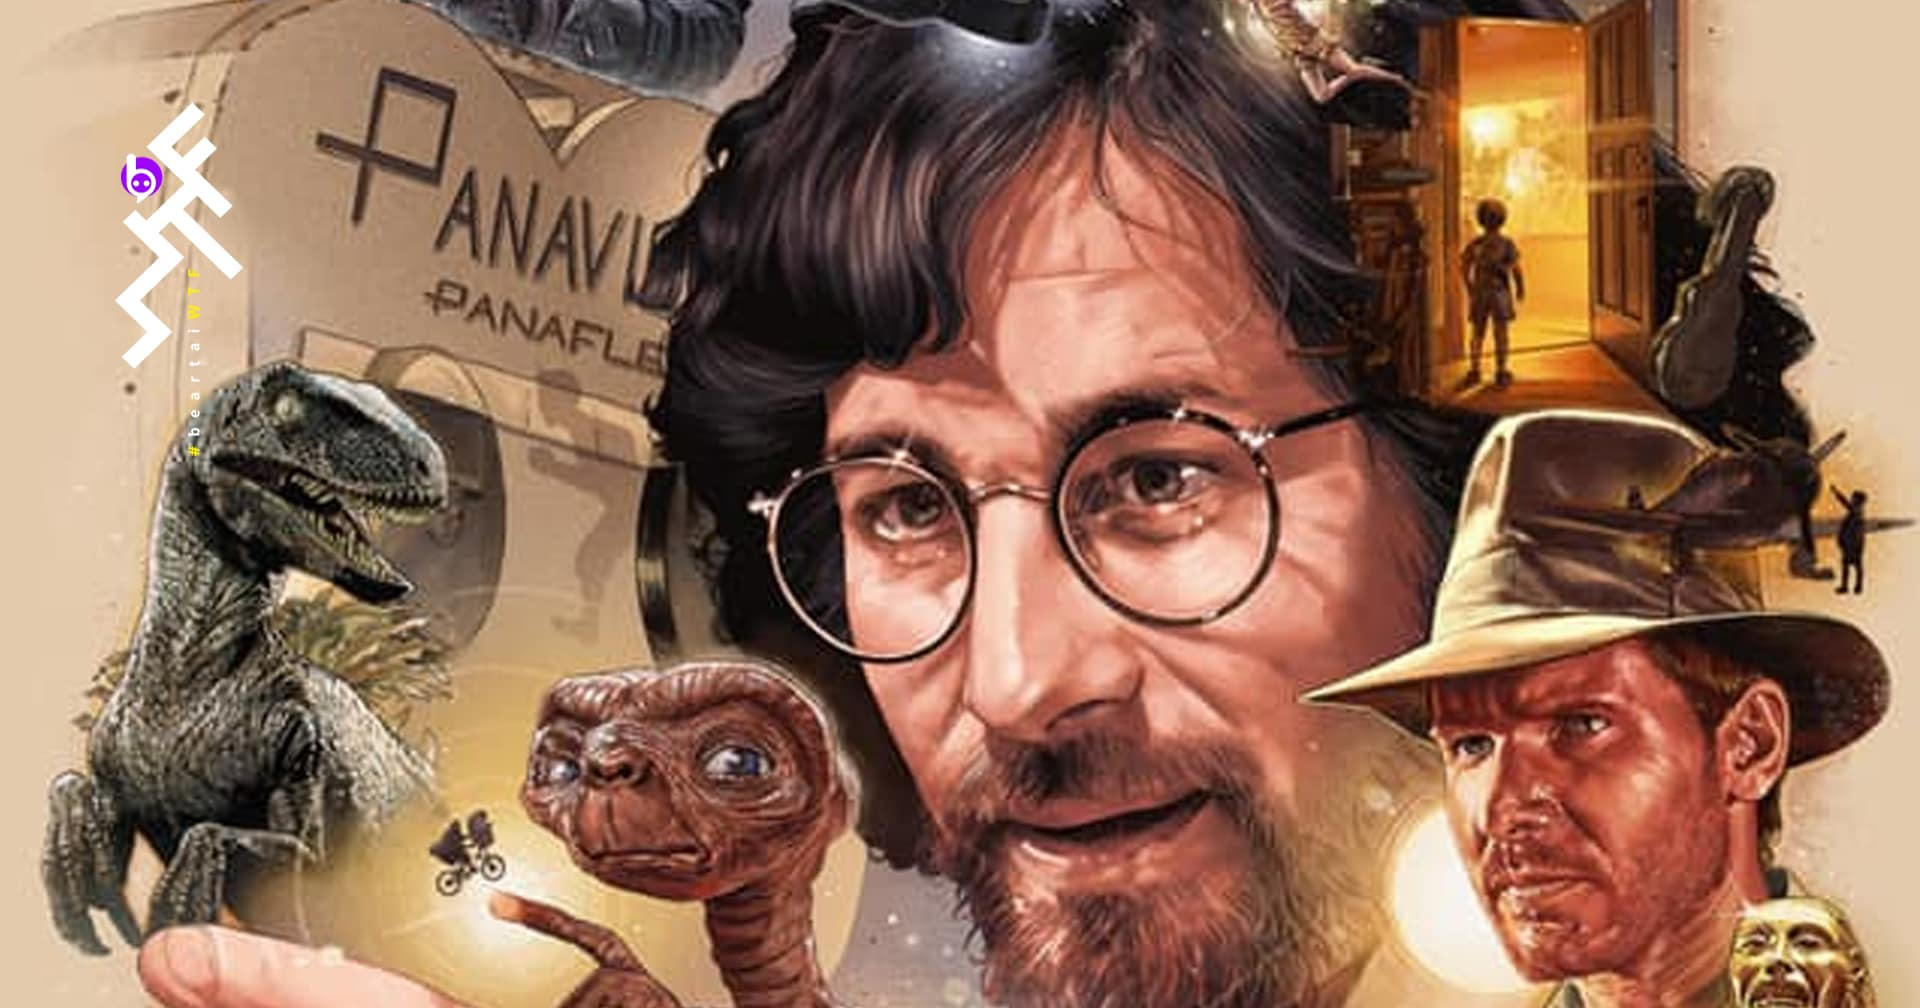 Steven Spielberg Film on Netflix